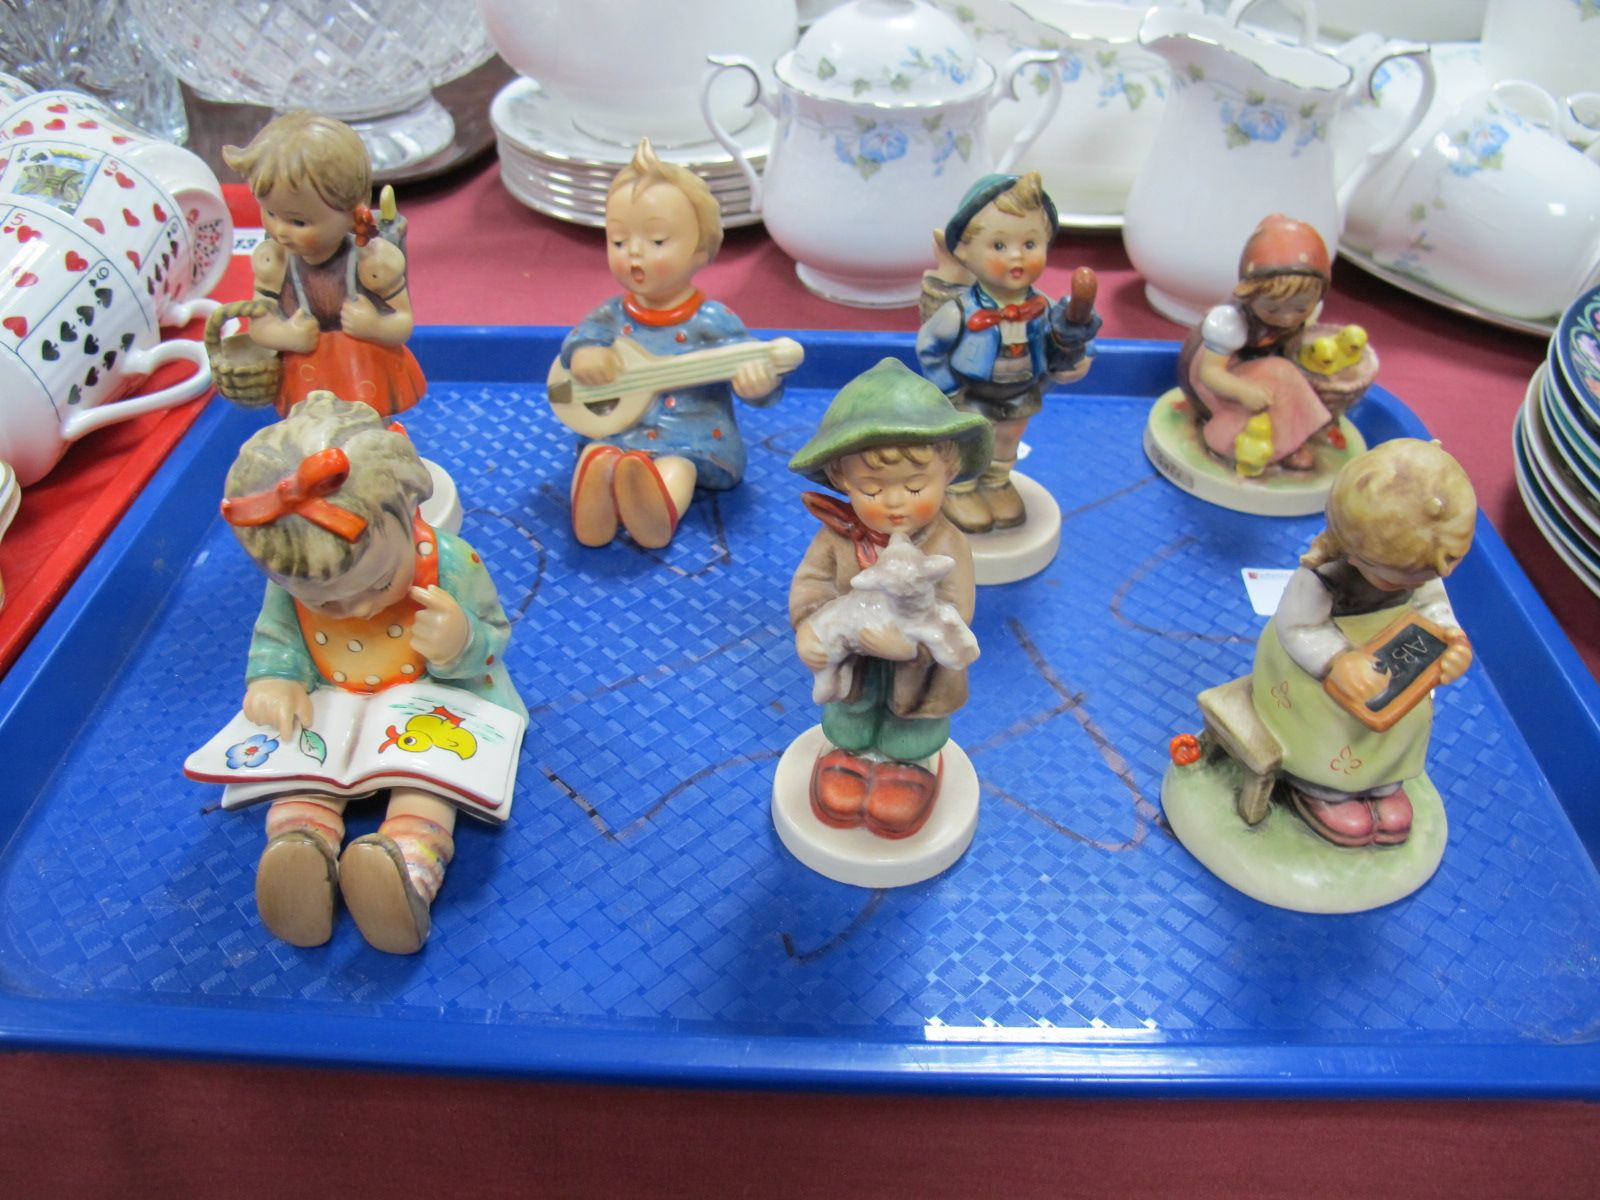 Lot 11 - Seven Hummel Figures, including Chick Girl, Seated Girl with Guitar, Boy with Umbrella, Seated